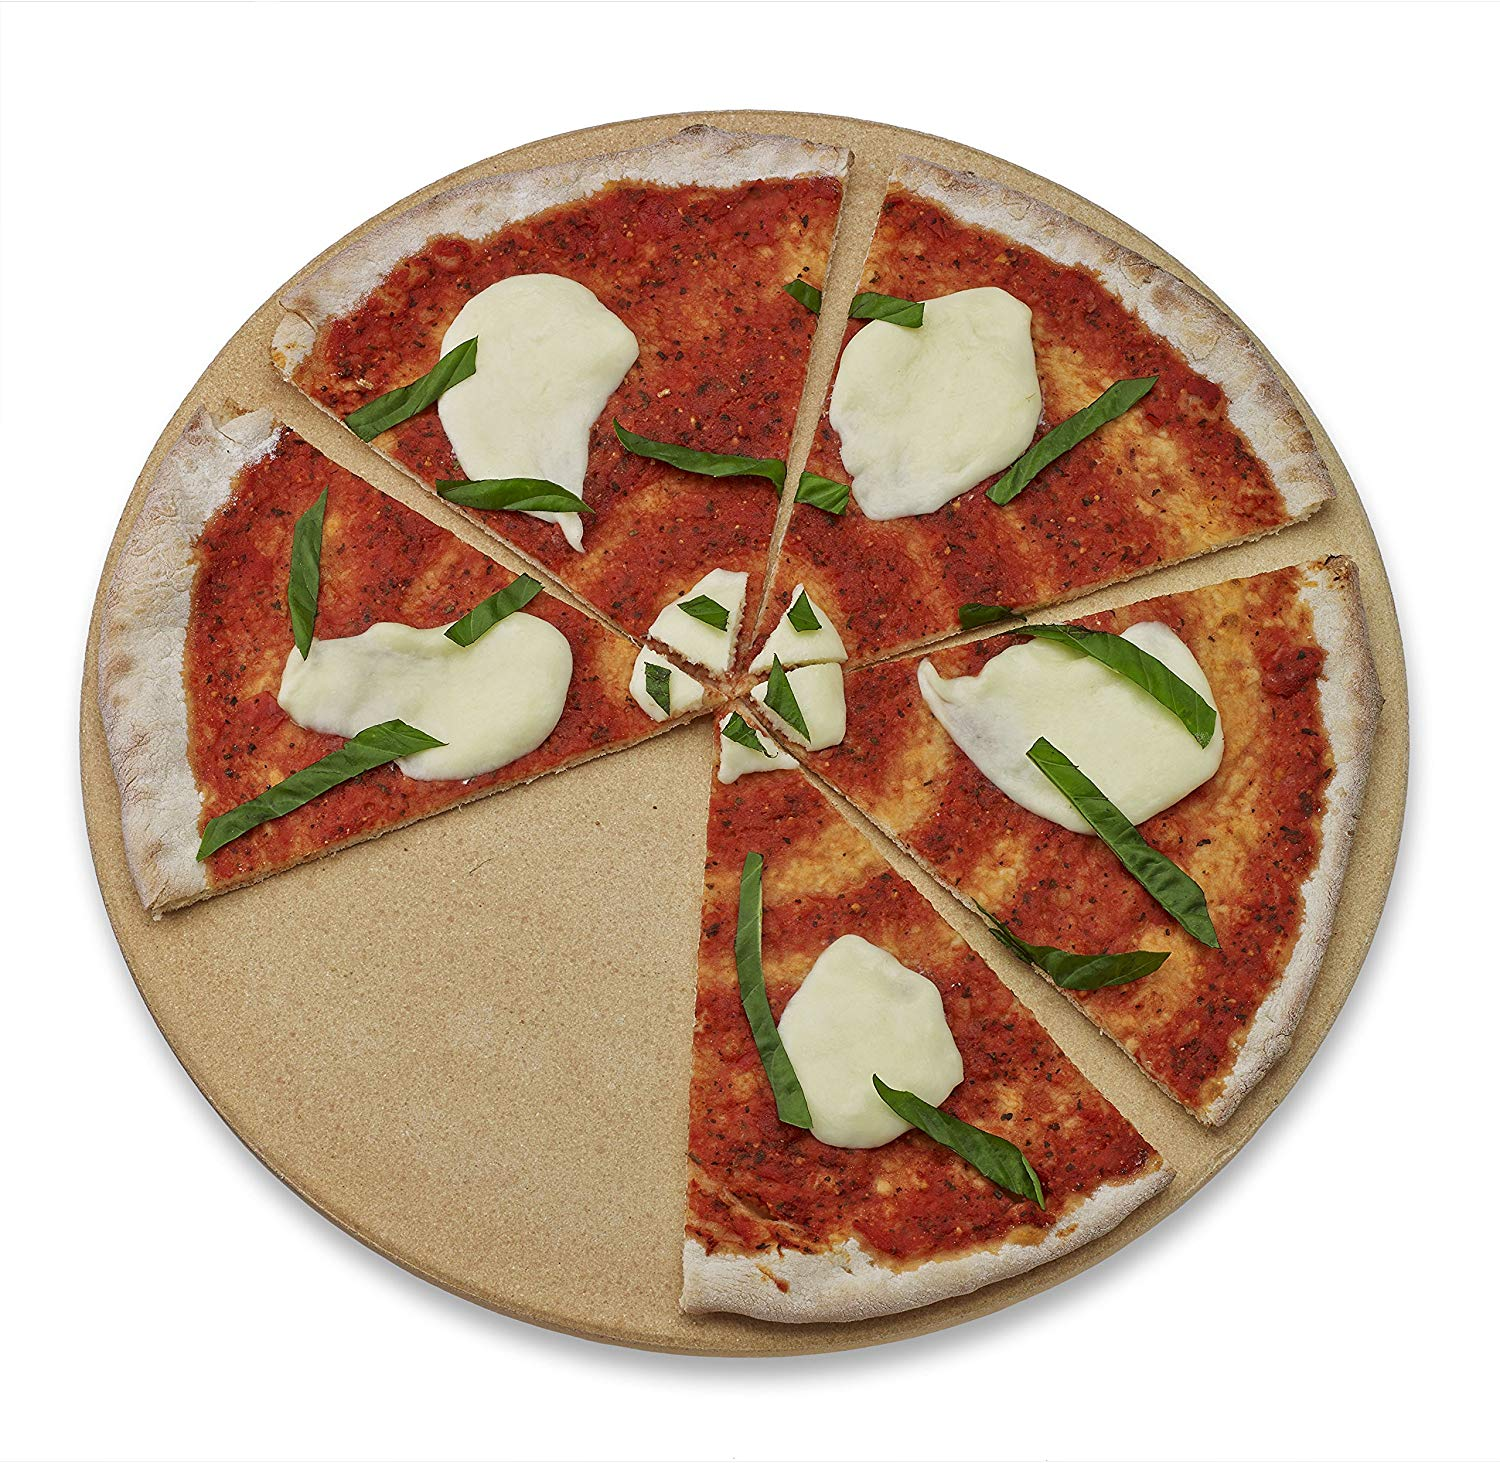 "Old stone oven round pizza 16"" stone"